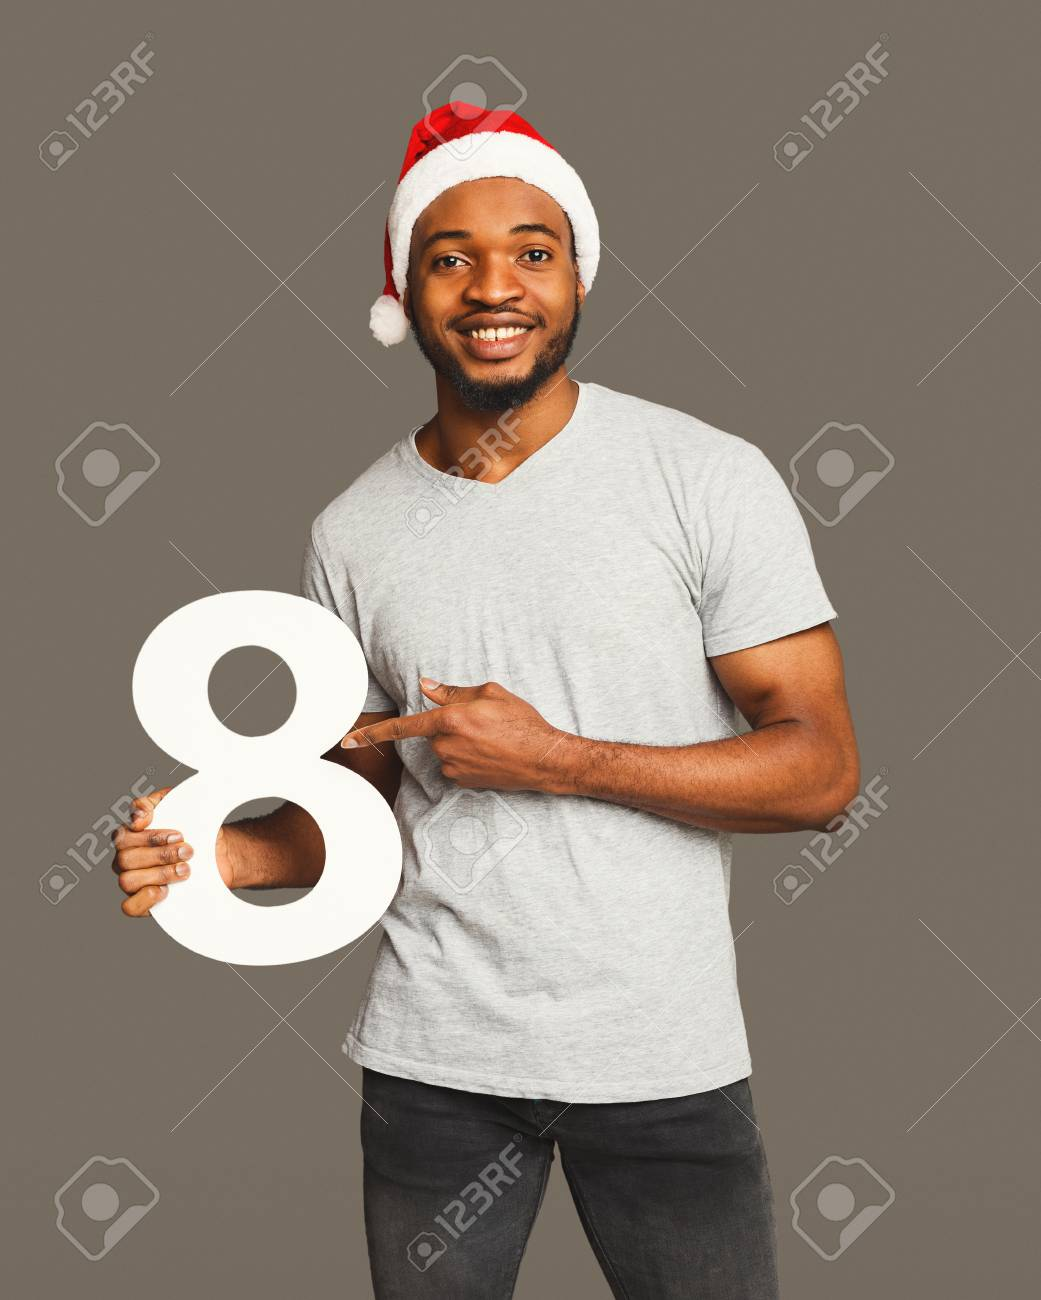 4888614f3 Happy black man with 8 number portrait. African-american boy..